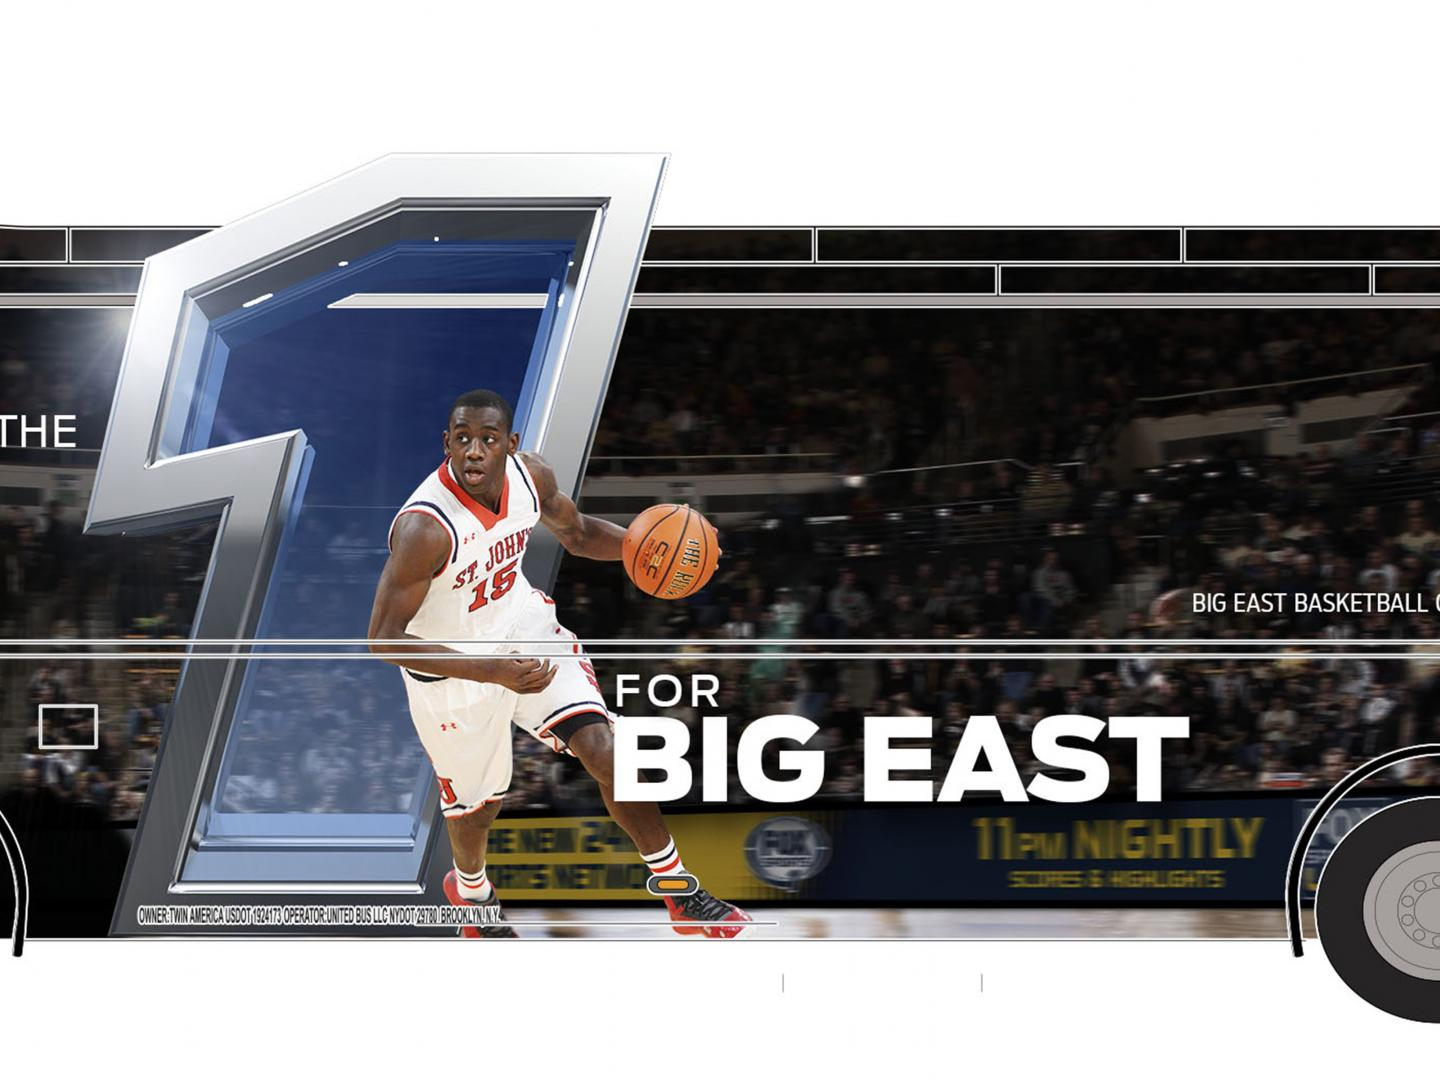 SUPER BOWL BUSES - The 1 for Big East Thumbnail